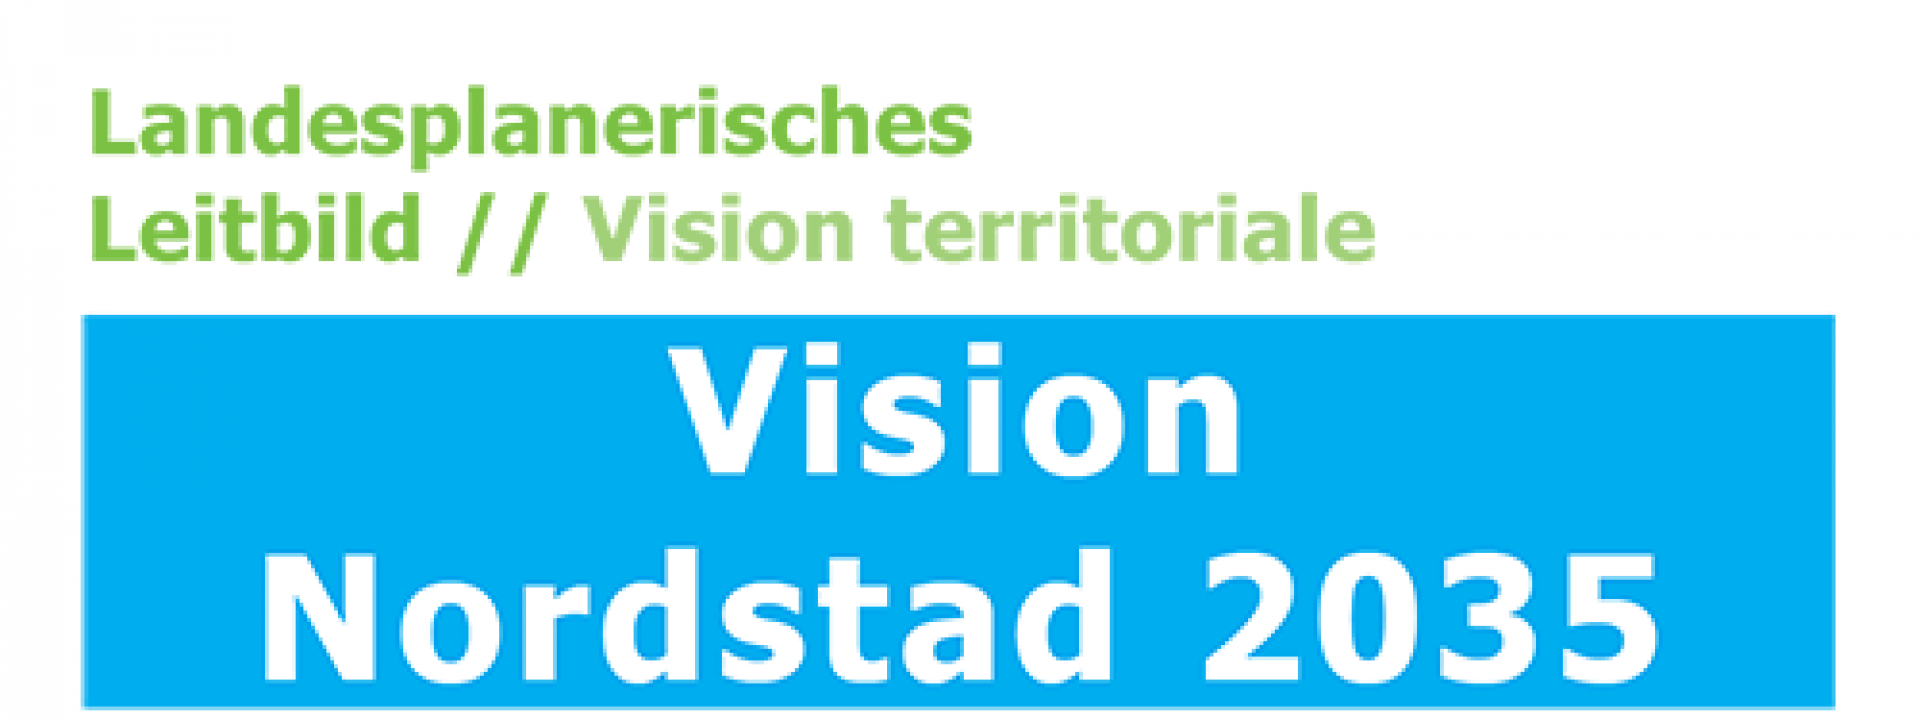 Video - Vision Nordstad 2035 - LU-DE